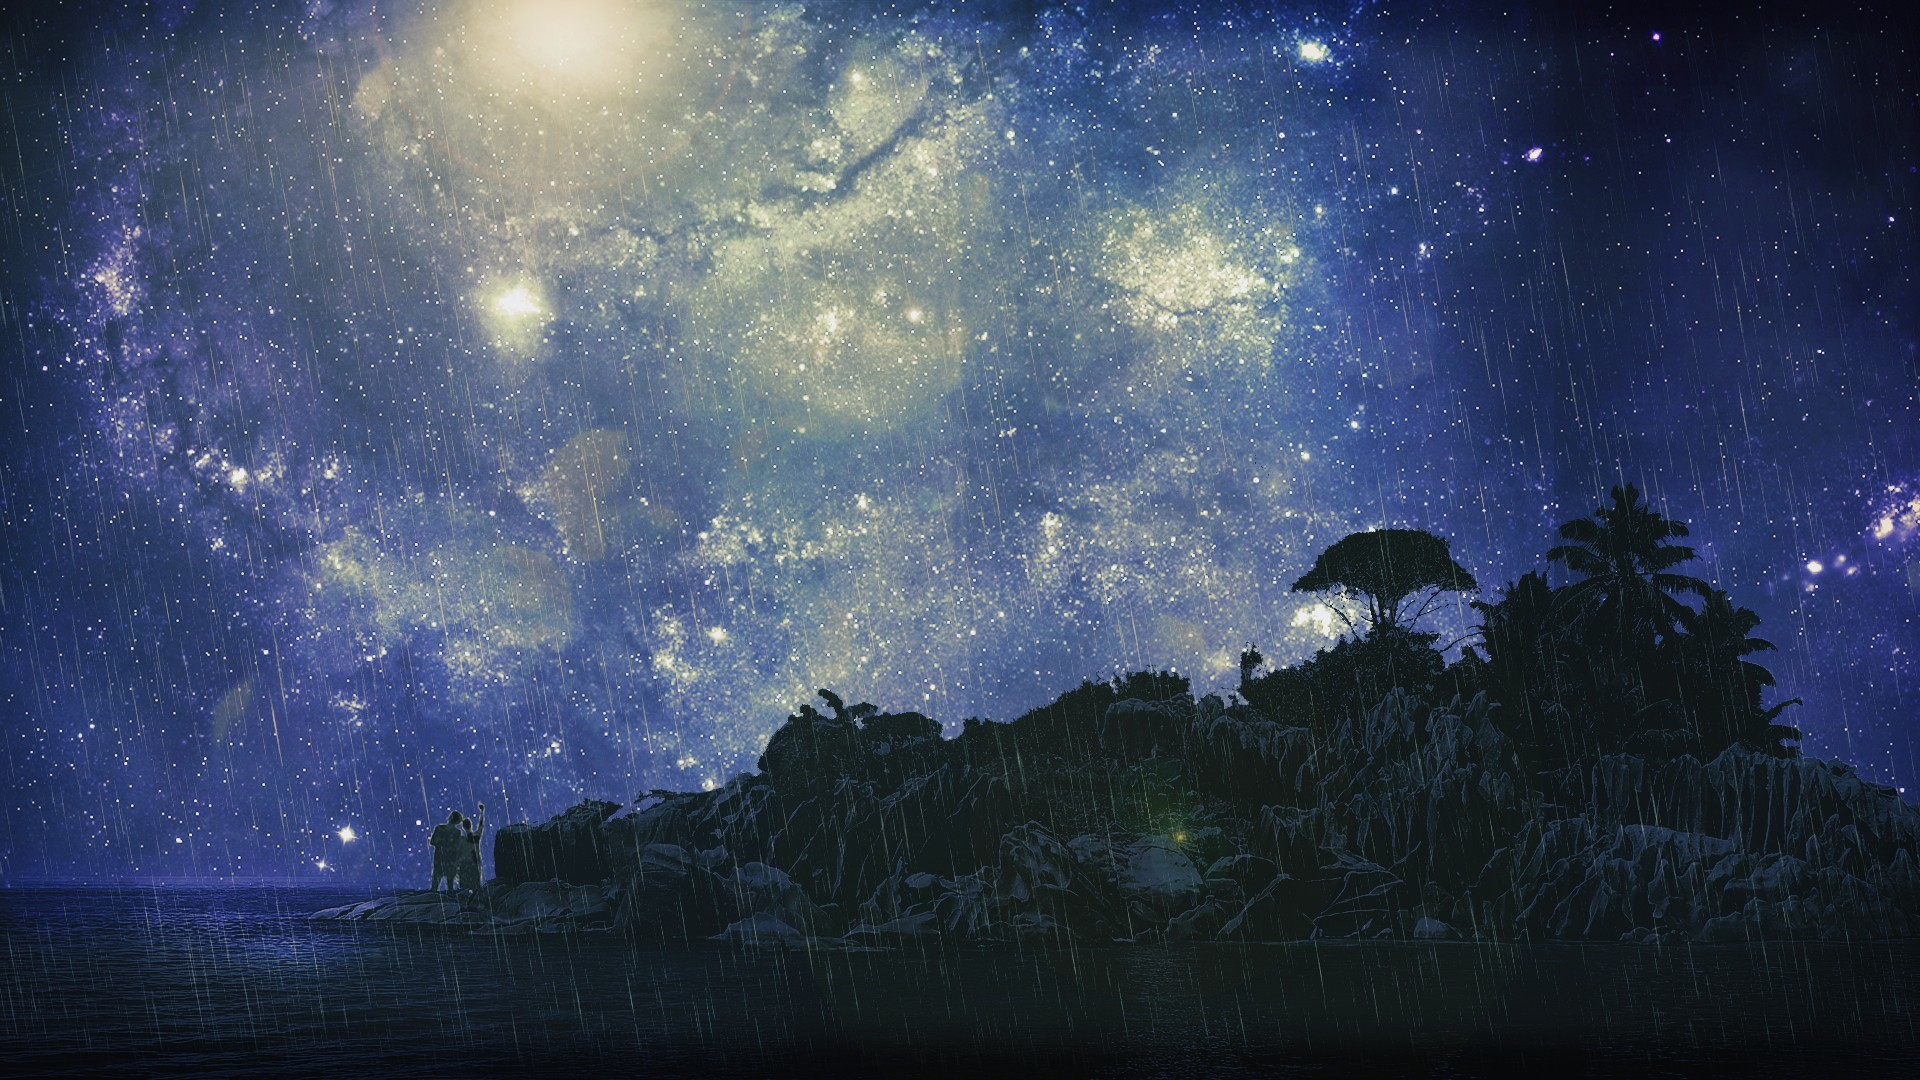 1920x1080 Starry Night Sky Wallpapers - Wallpaper Cave